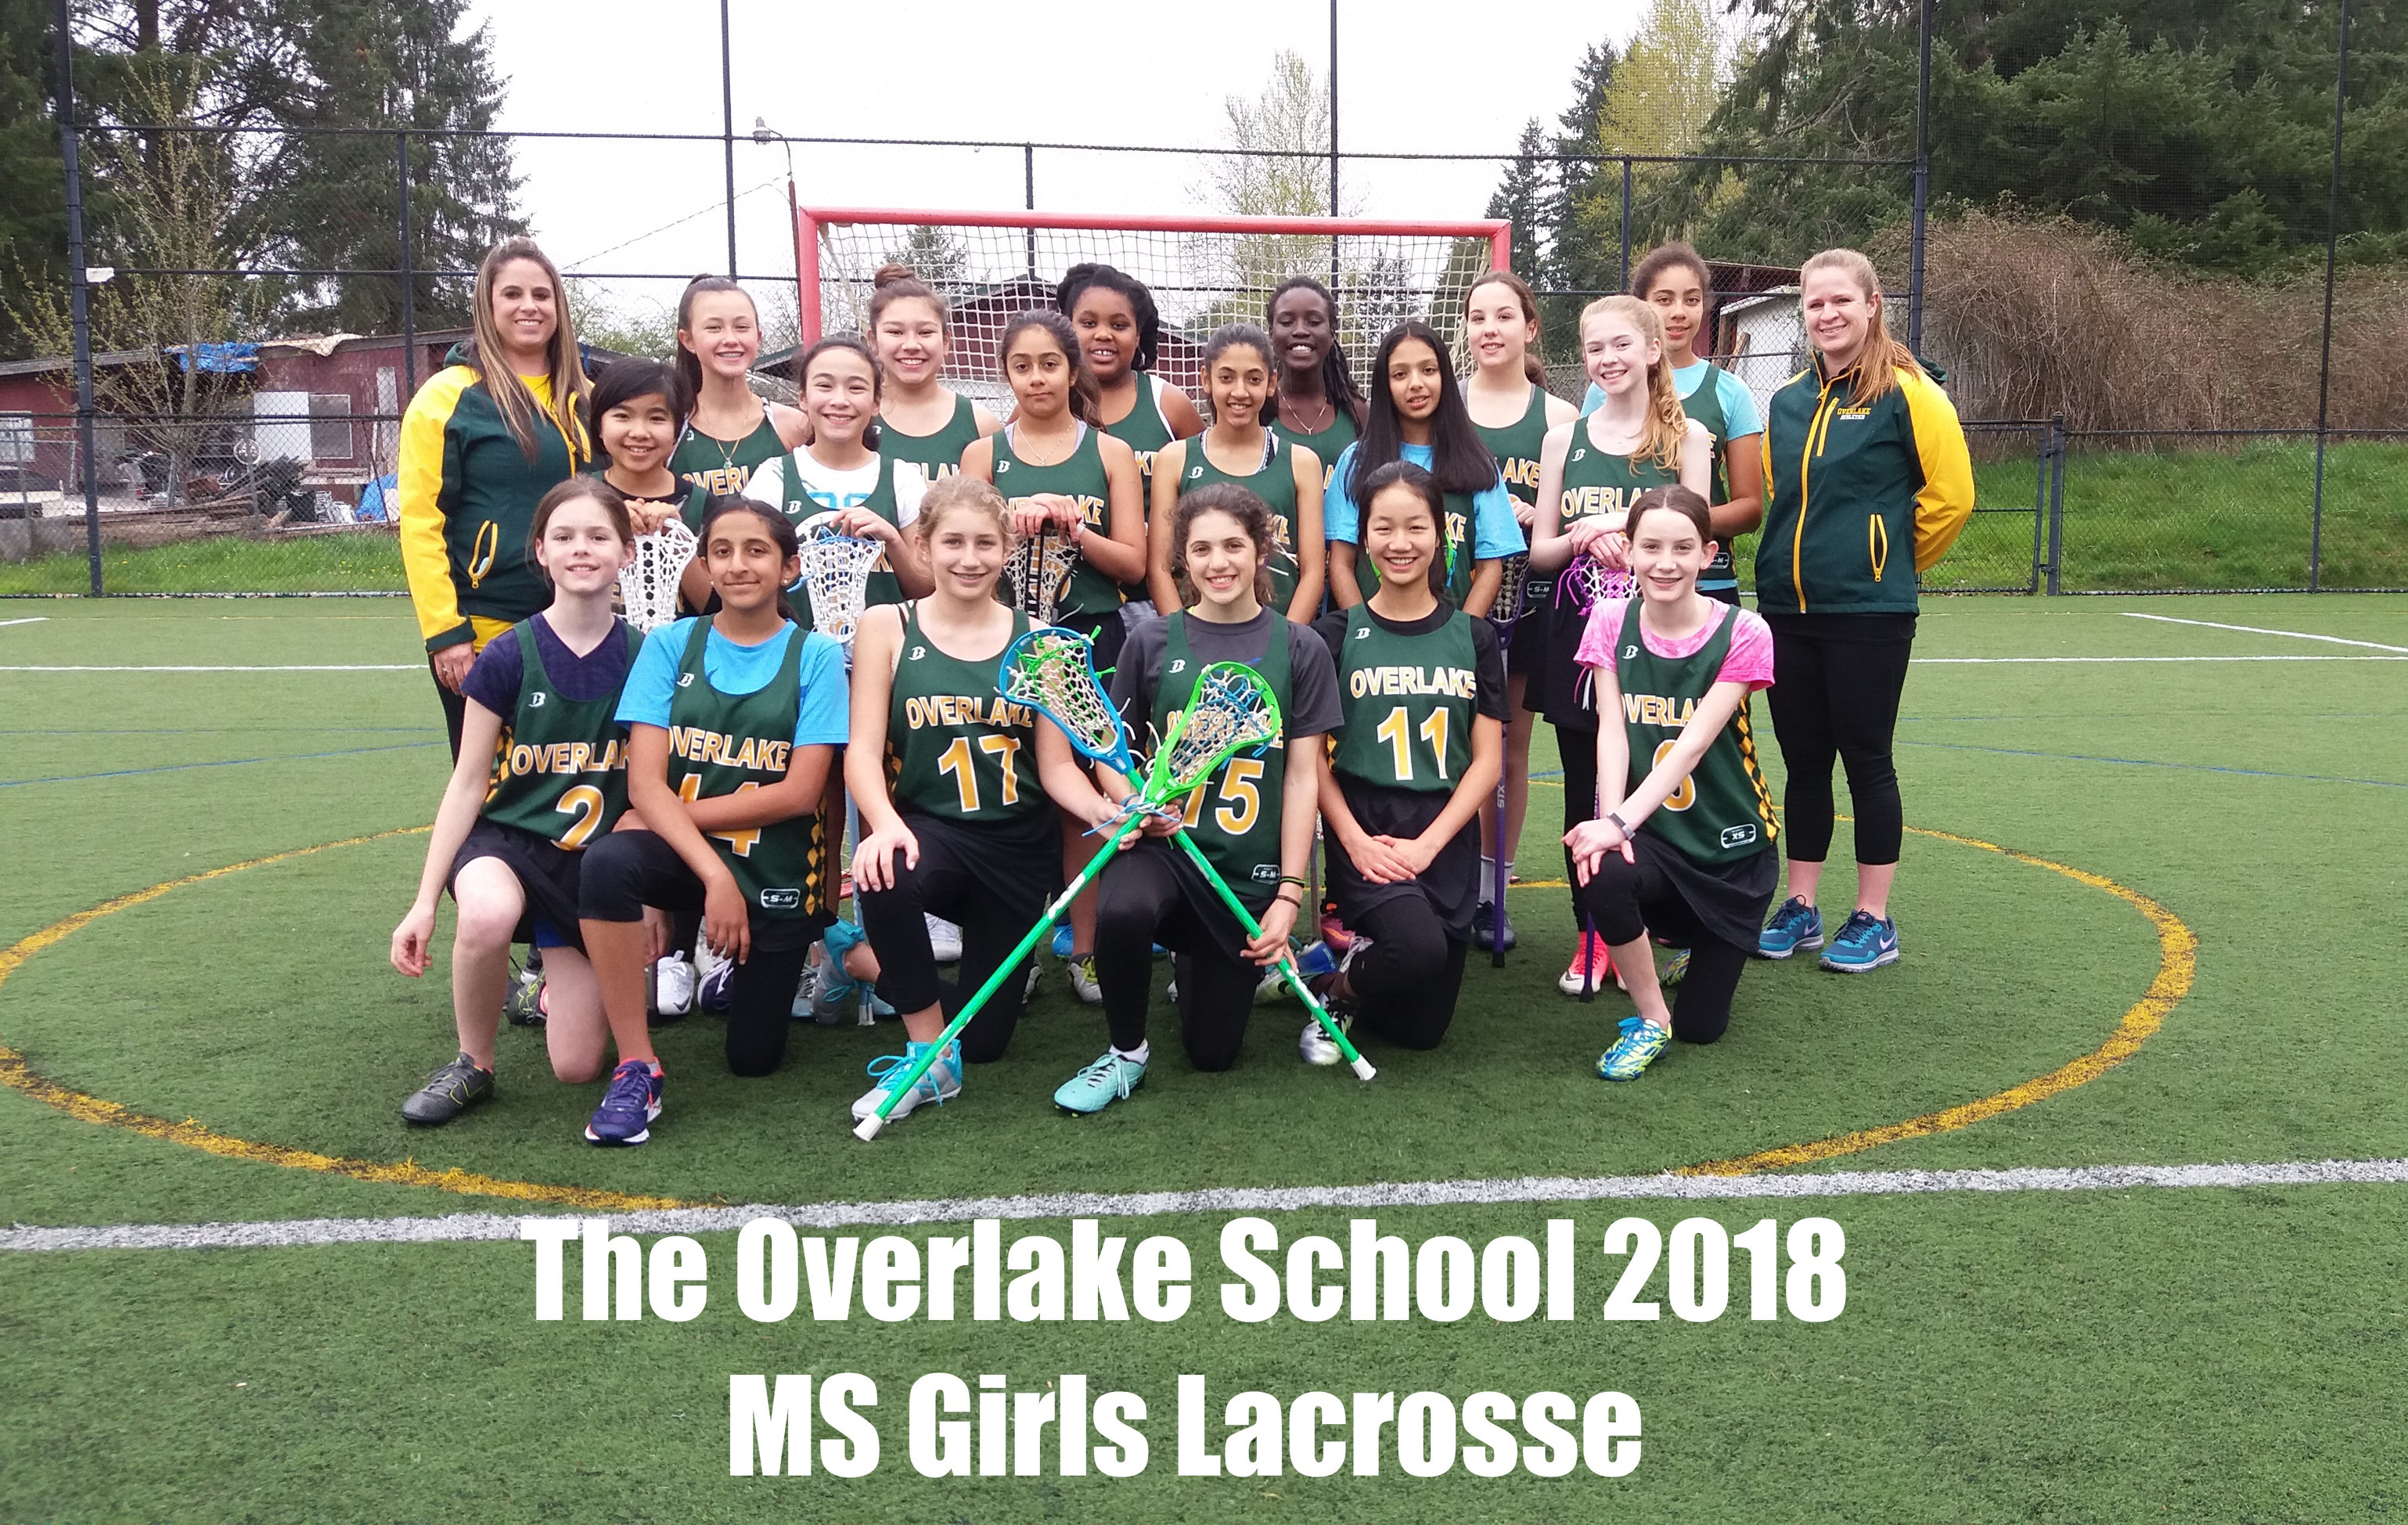 MS Girls Lacrosse